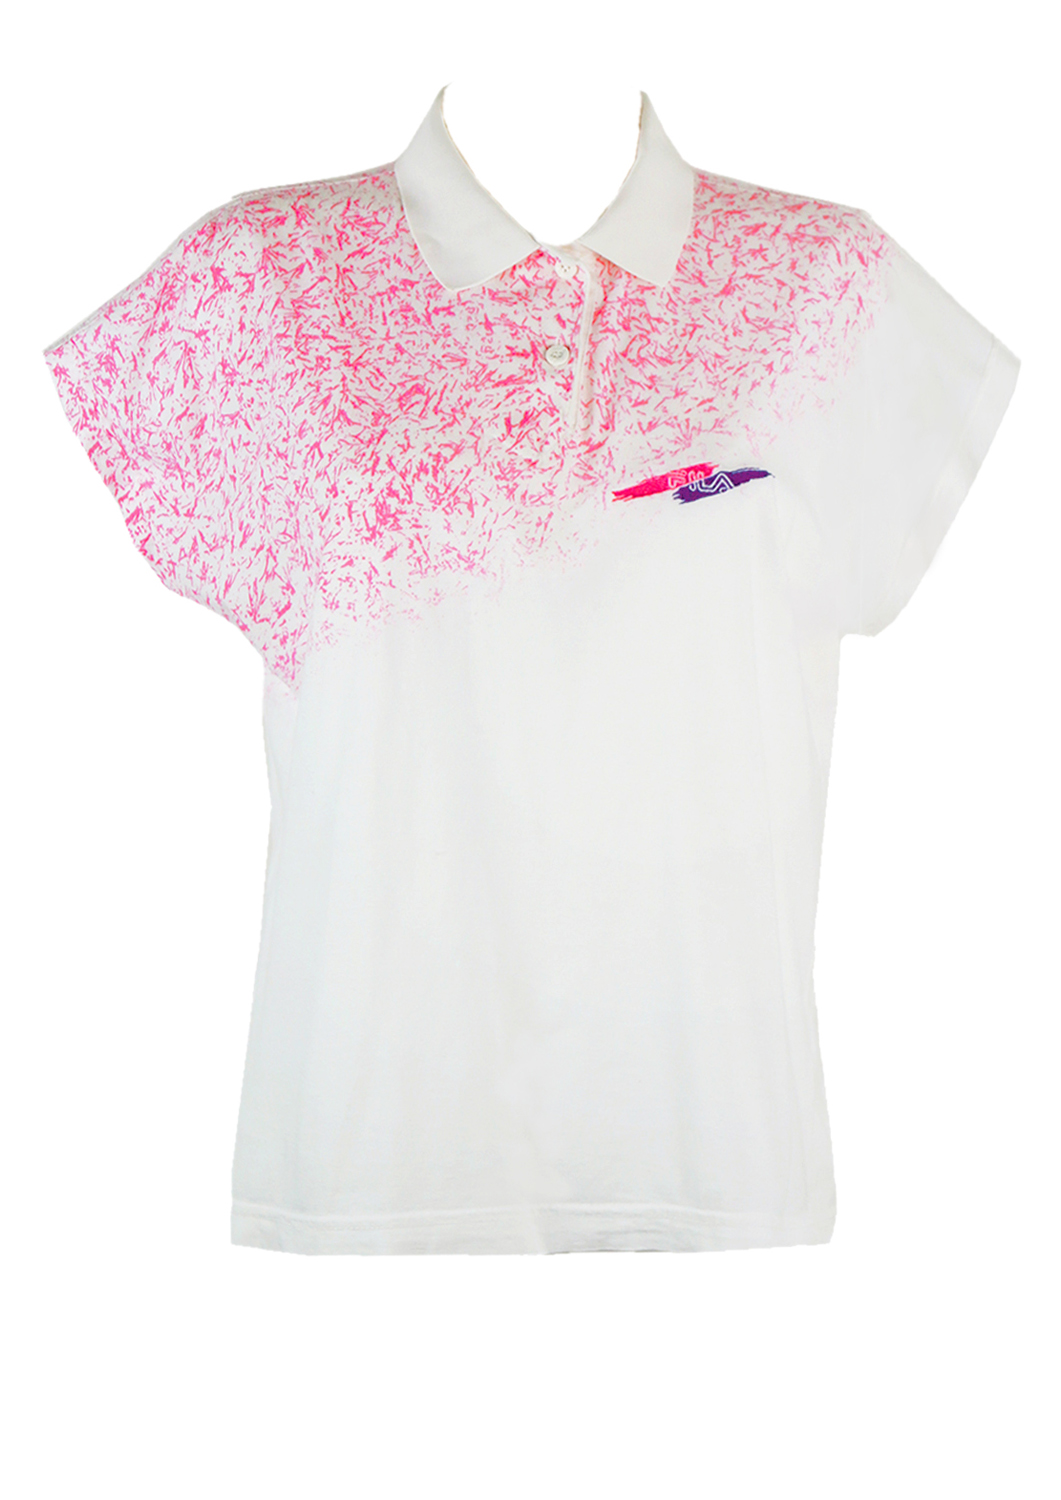 2a90f354 Fila Polo Shirt in White with Flecked Pink Design – M/L – Reign Vintage